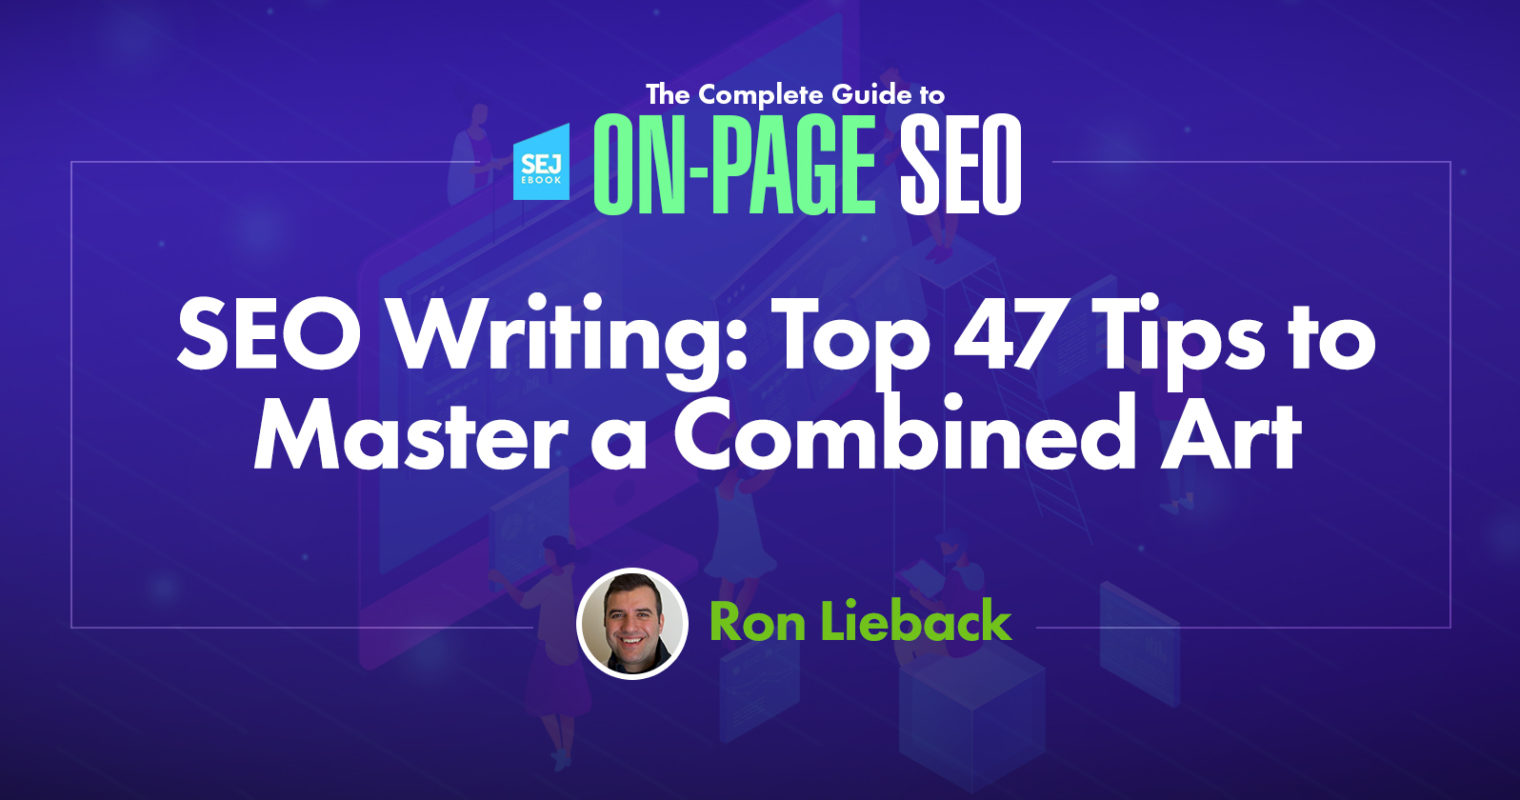 SEO Writing: Top 47 Tips to Master a Combined Art